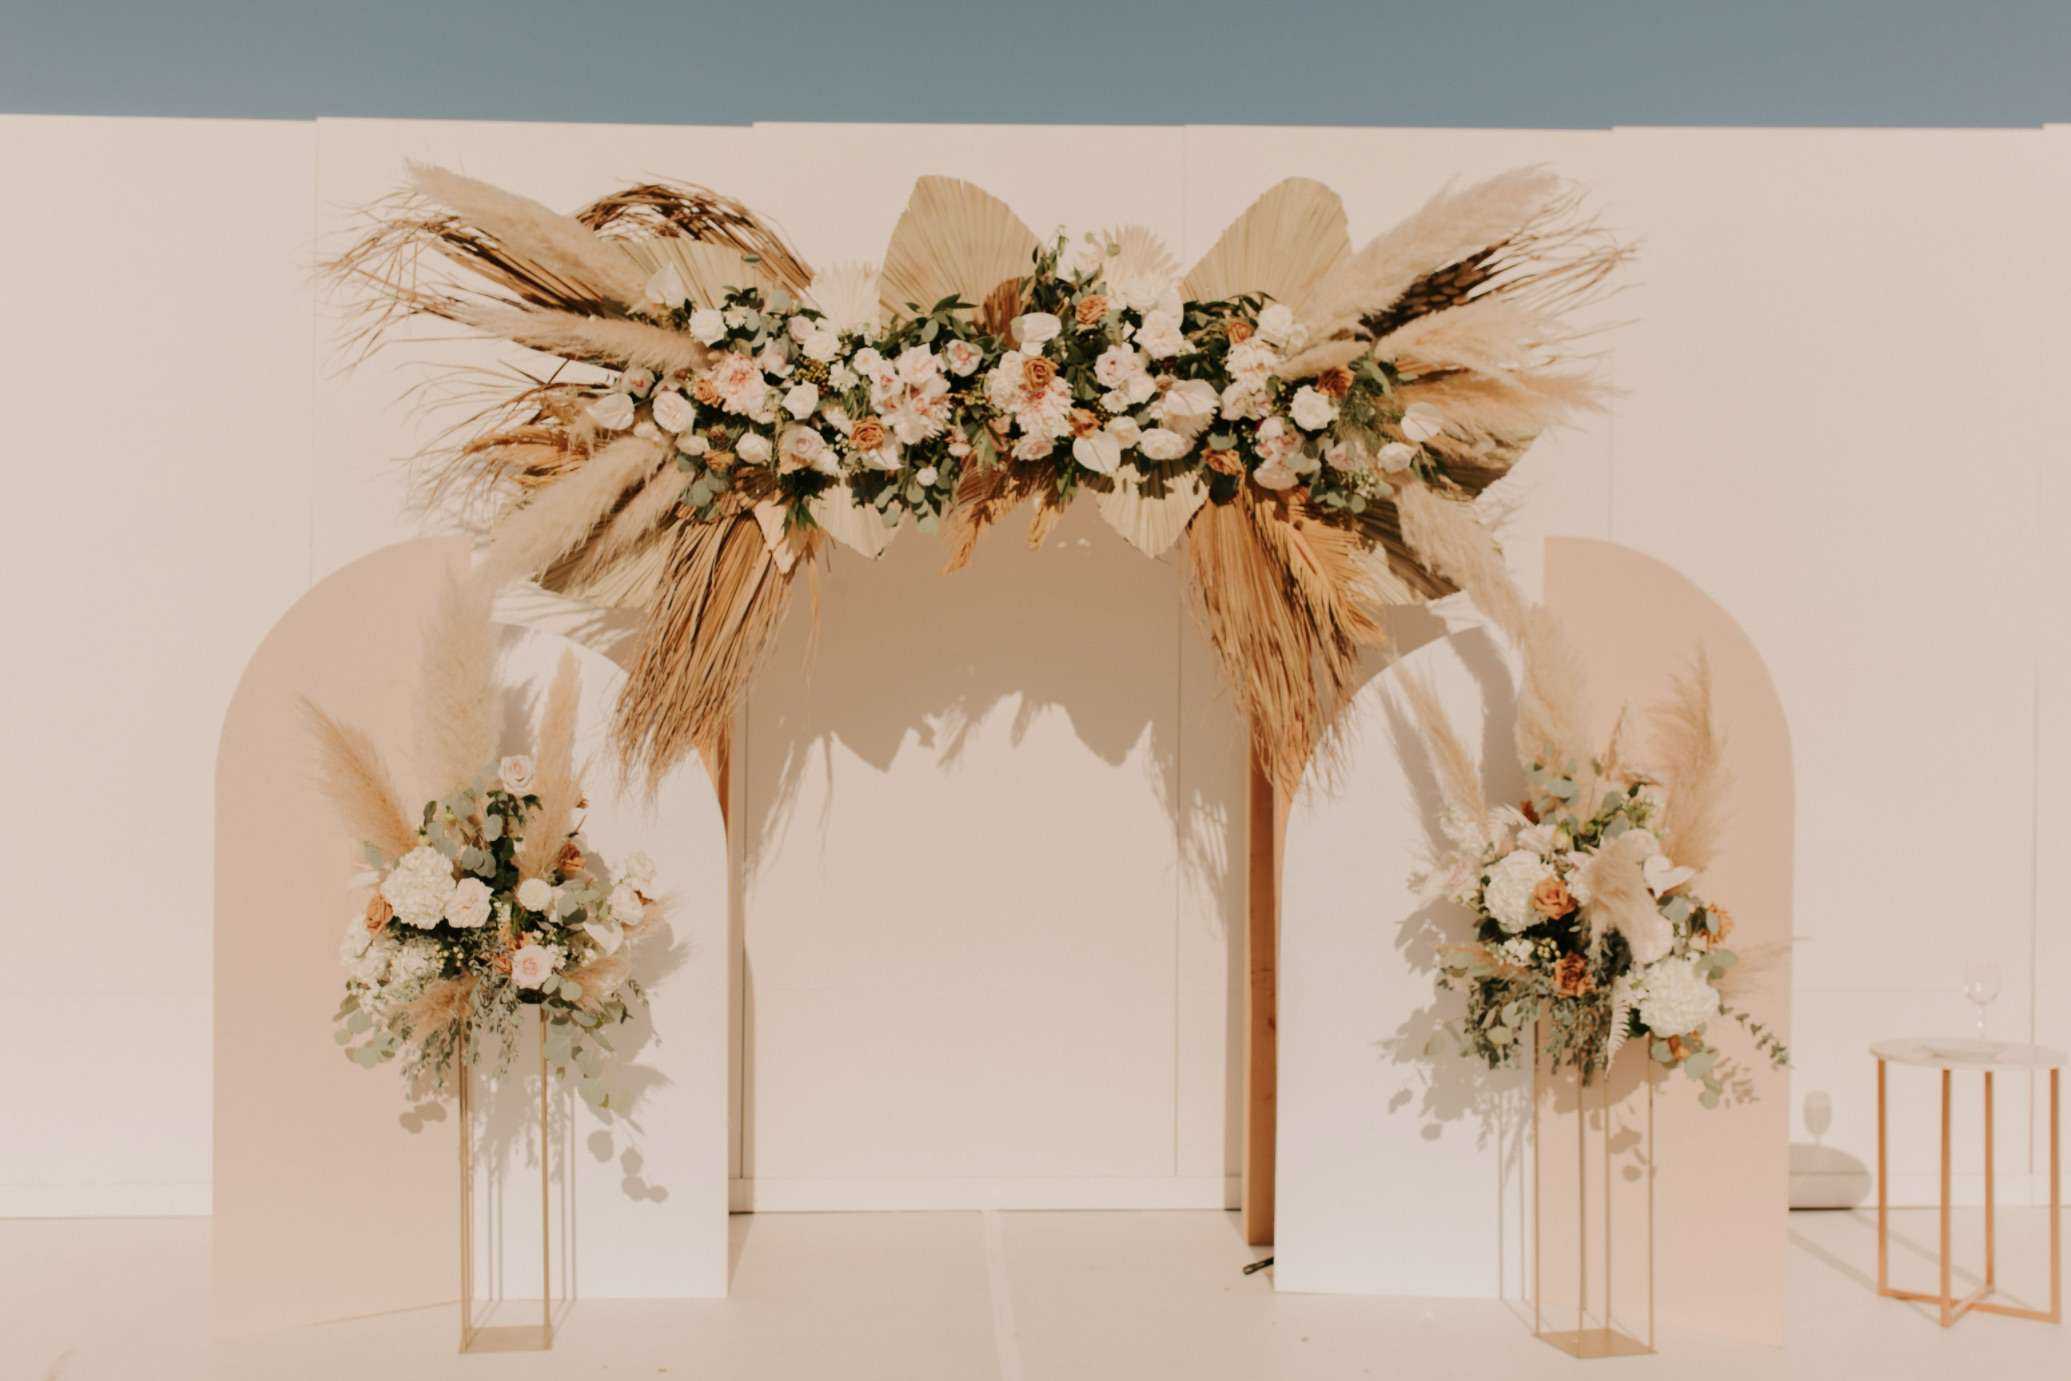 Wedding arch decorated with white, pink and gold flowers, dried palm leaves, and pampas grass